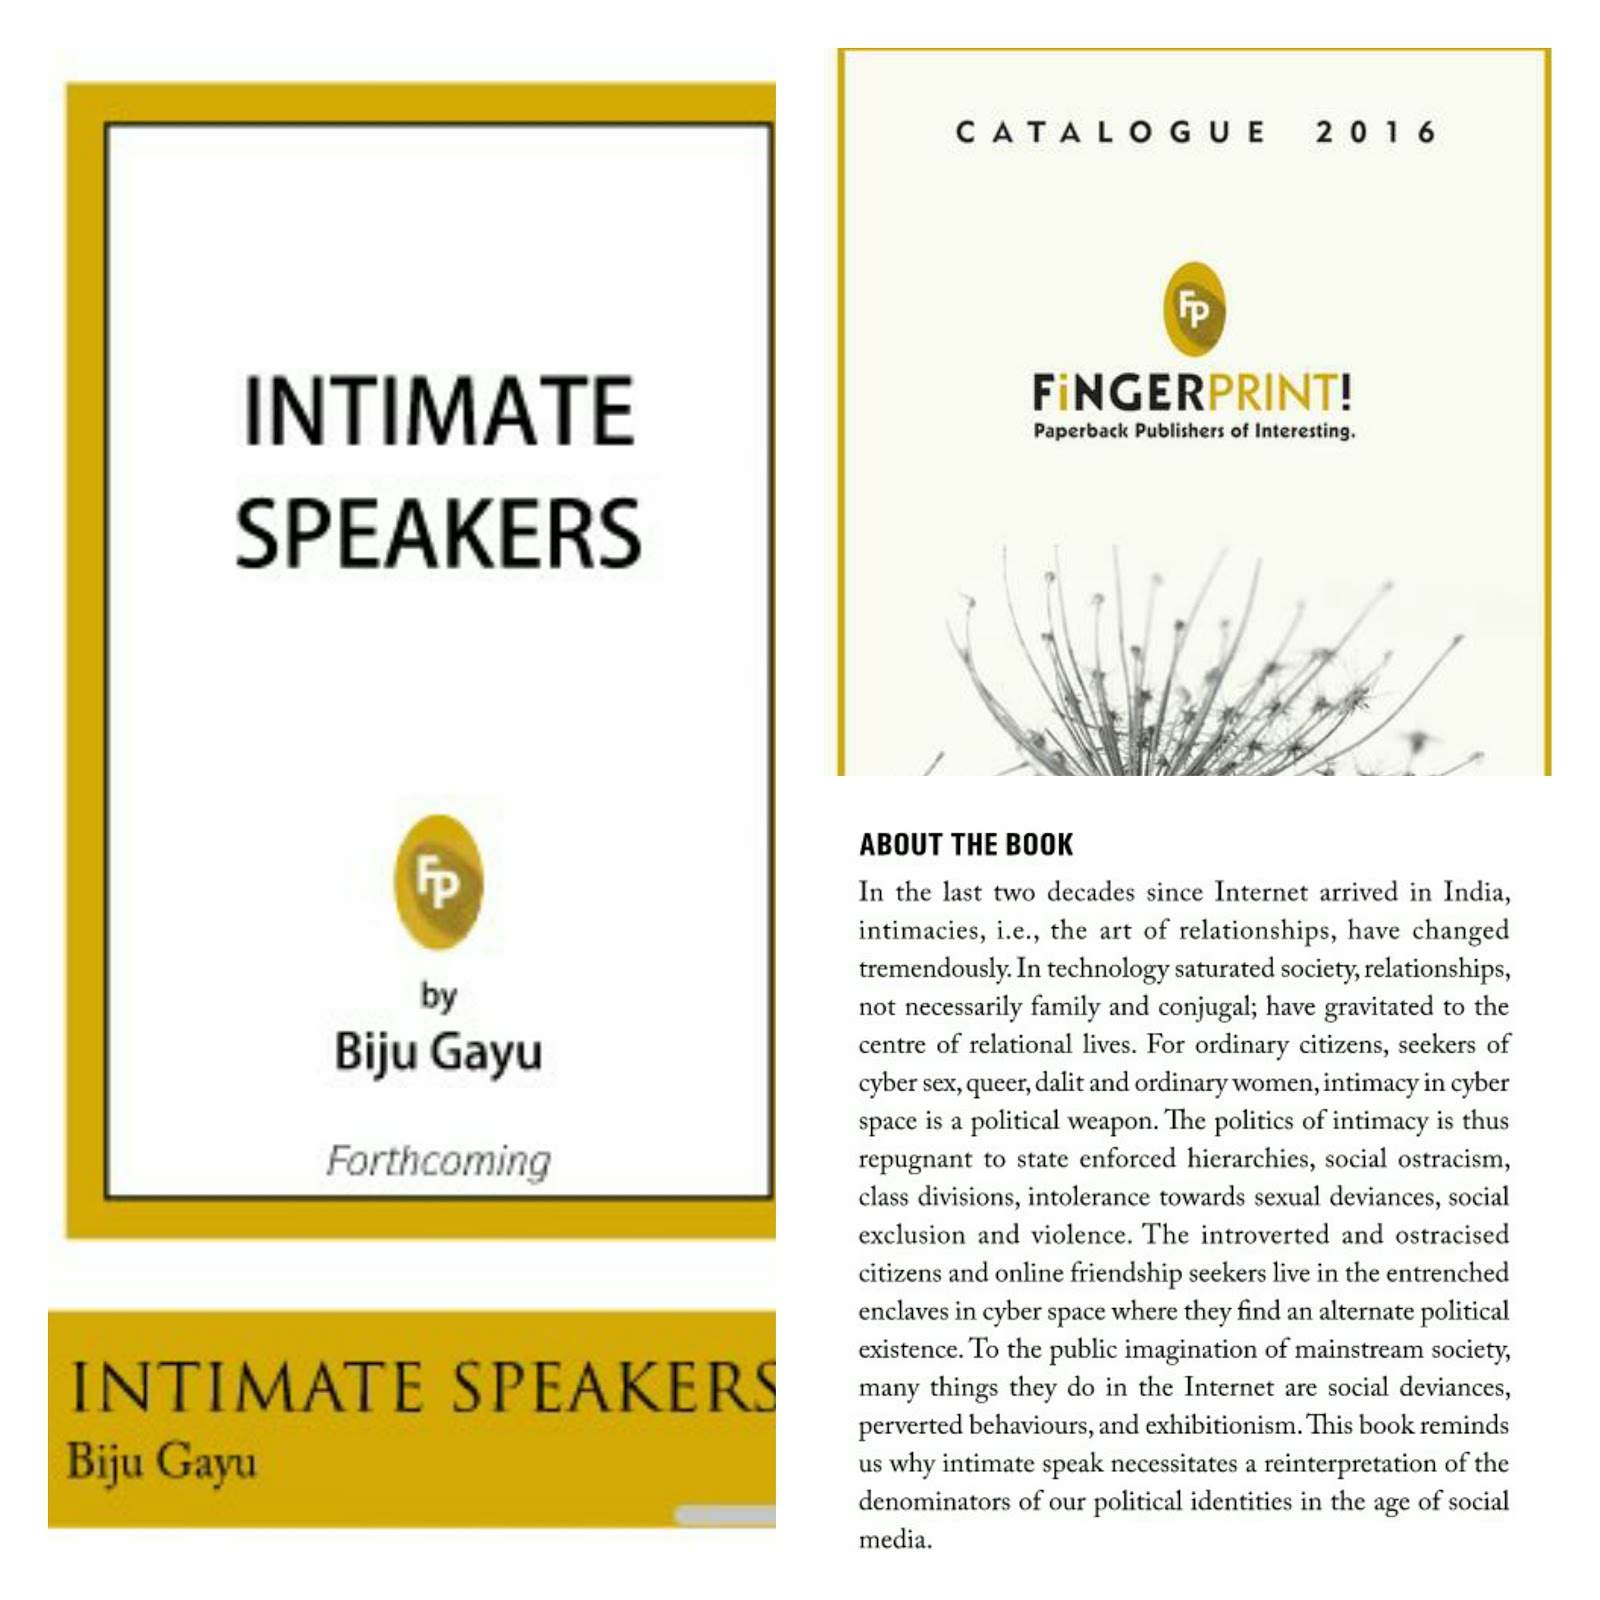 Intimate Speakers (Forthcoming book by Biju P R) From Fingerprint